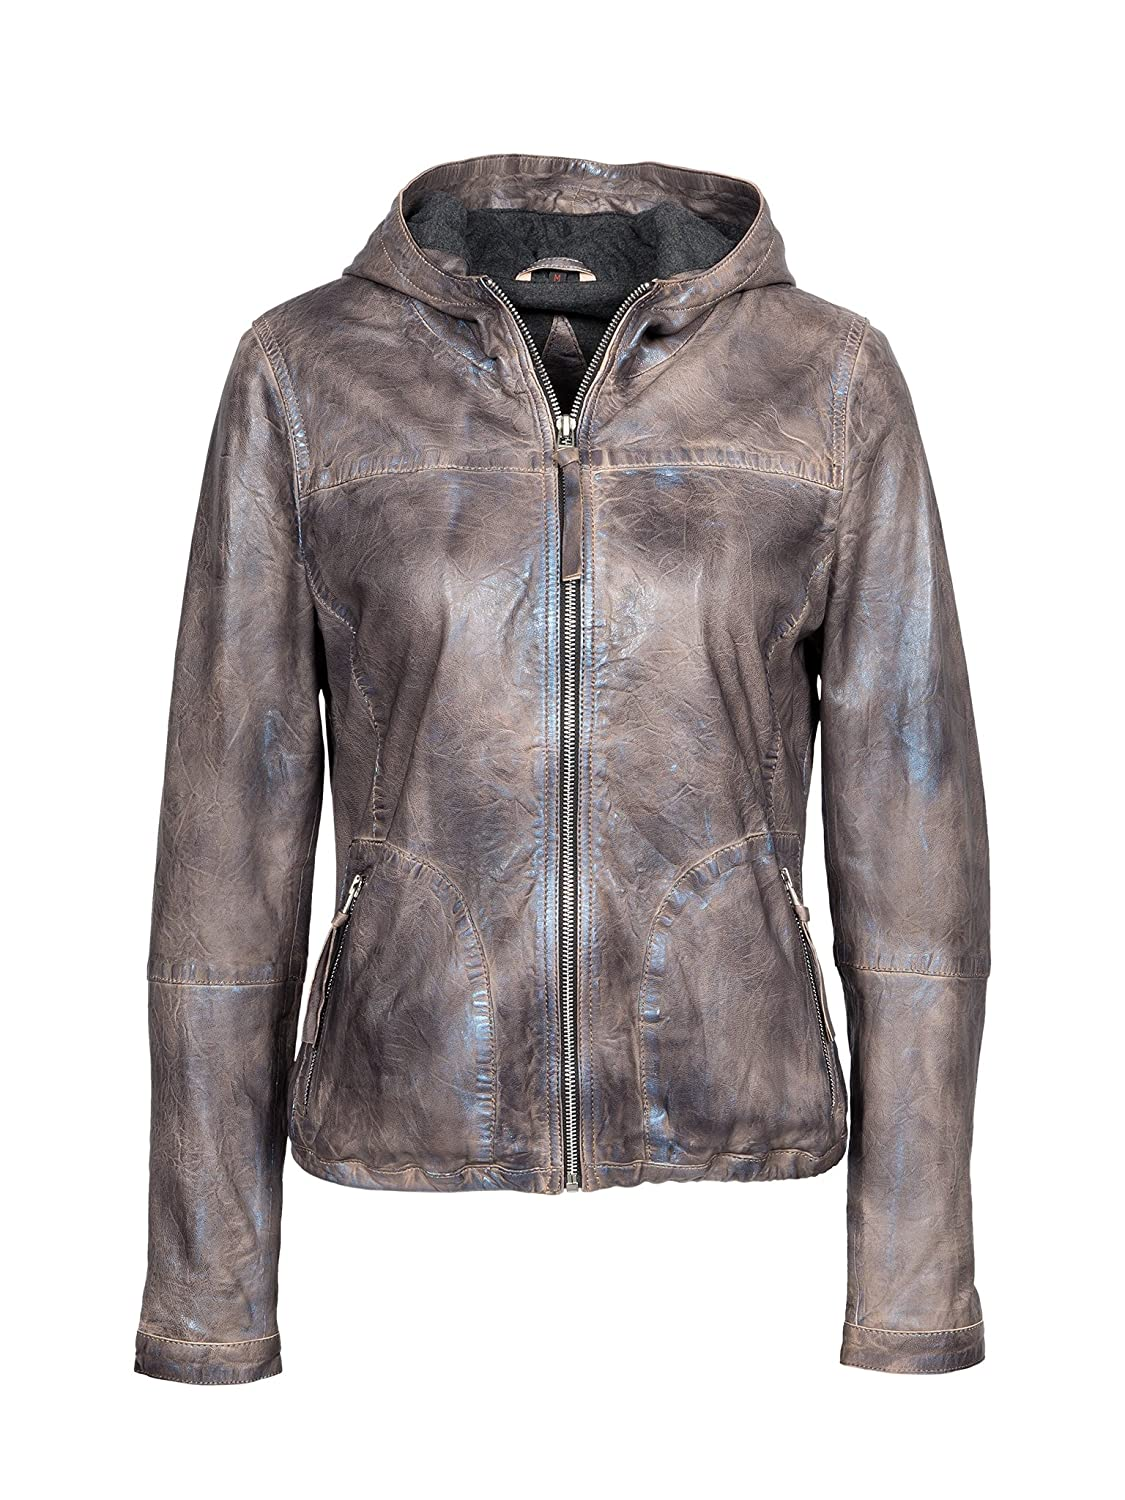 Freaky Nation Cloud, Chaqueta para Mujer, Plateado (Silver 7007), Medium: Amazon.es: Ropa y accesorios